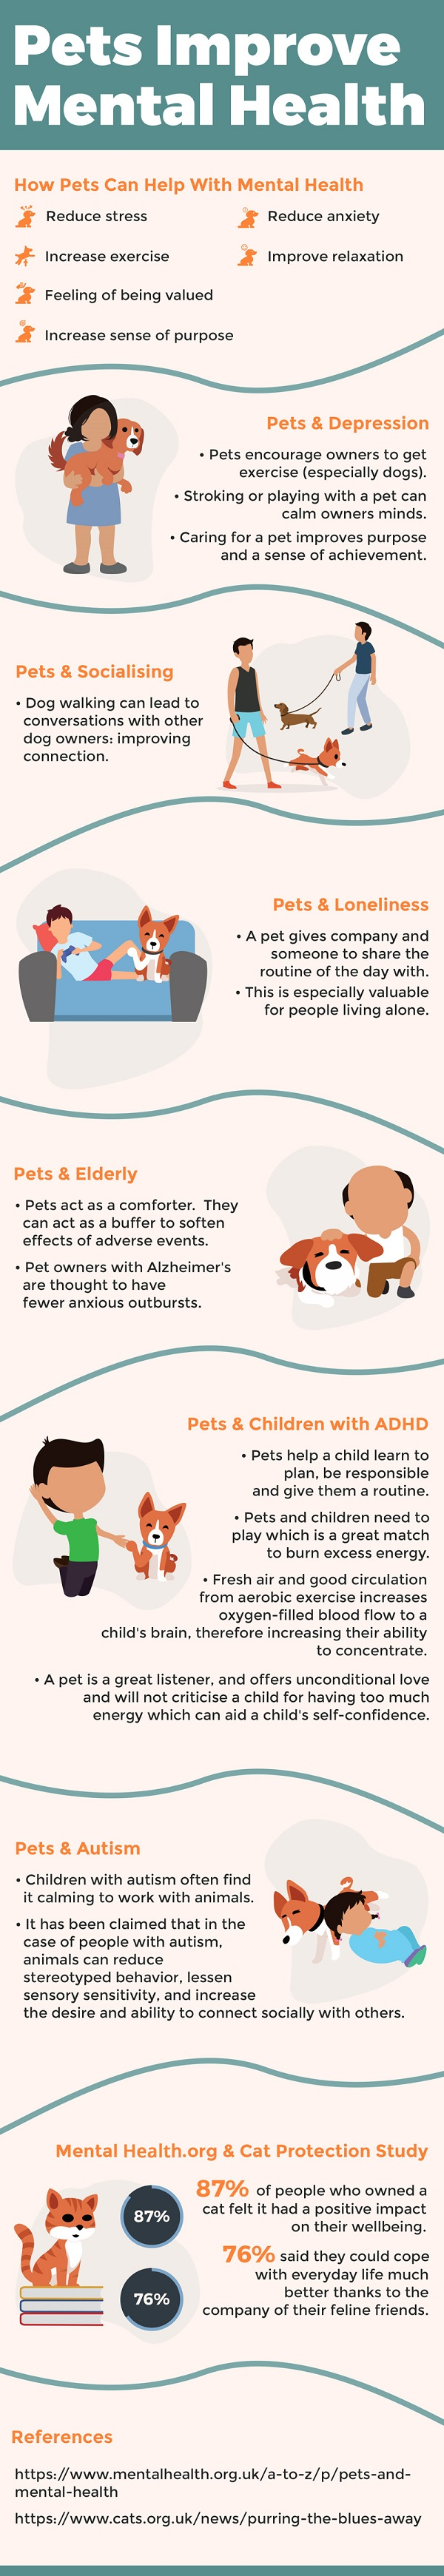 Pets Improve Mentsl Health Infographic